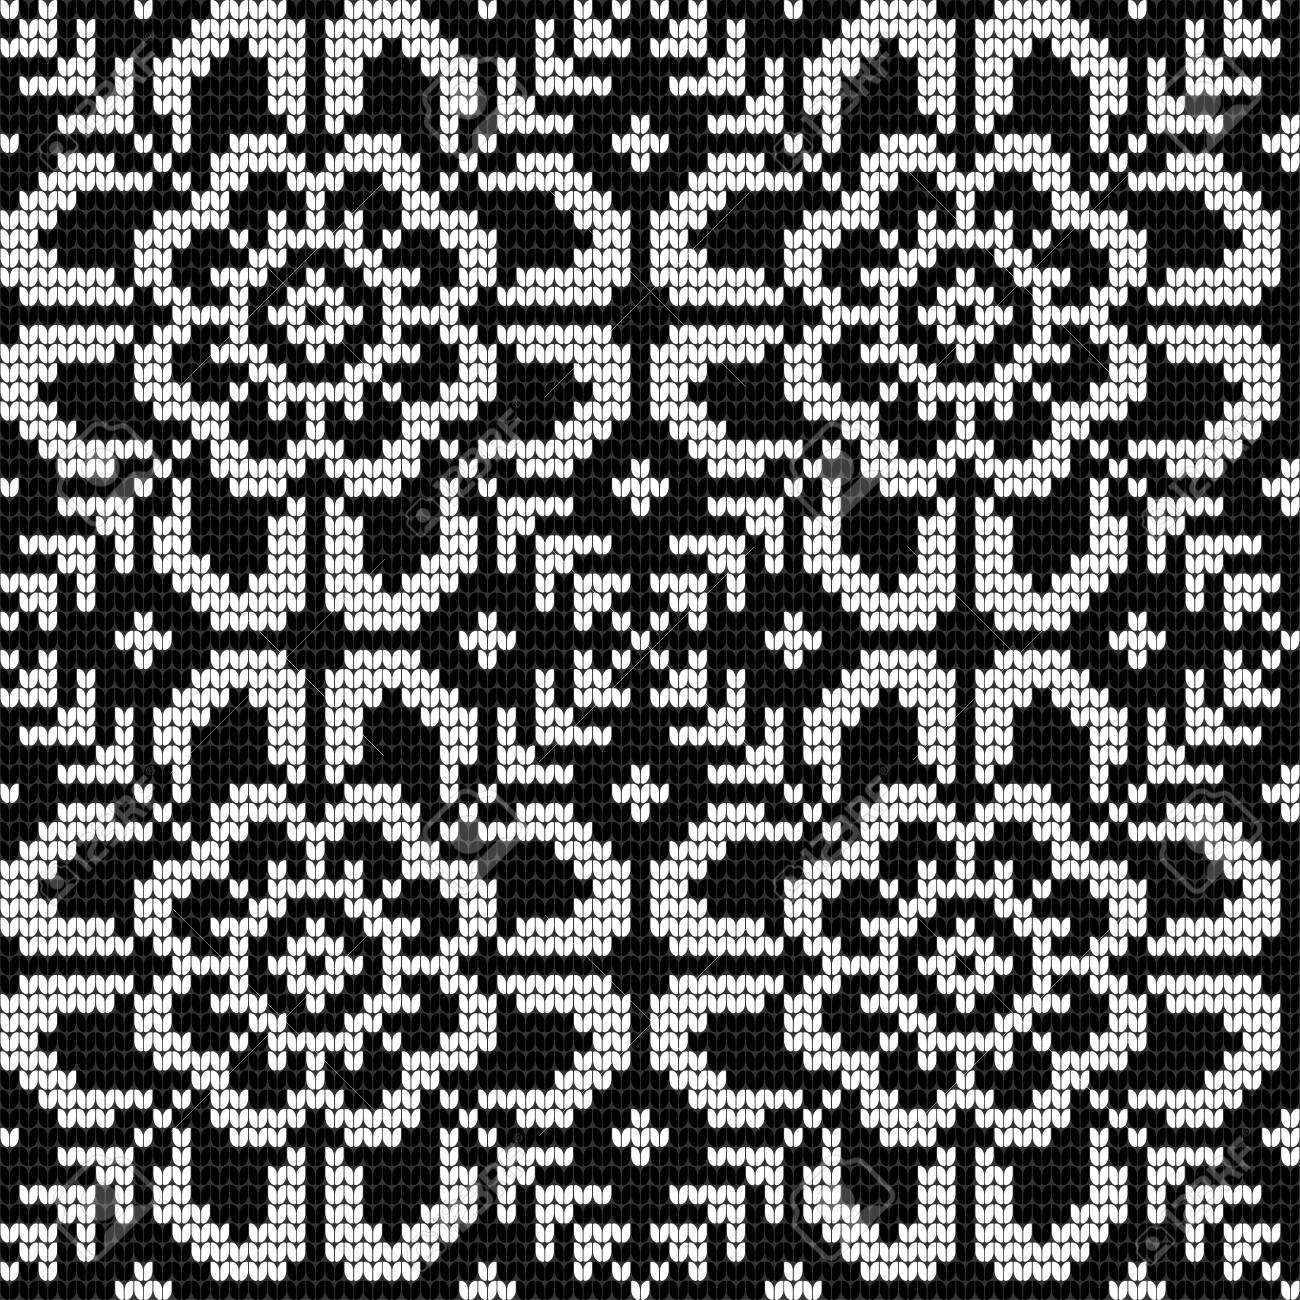 Traditional Knitting Pattern For Ugly Sweater, Vector Seamless ...